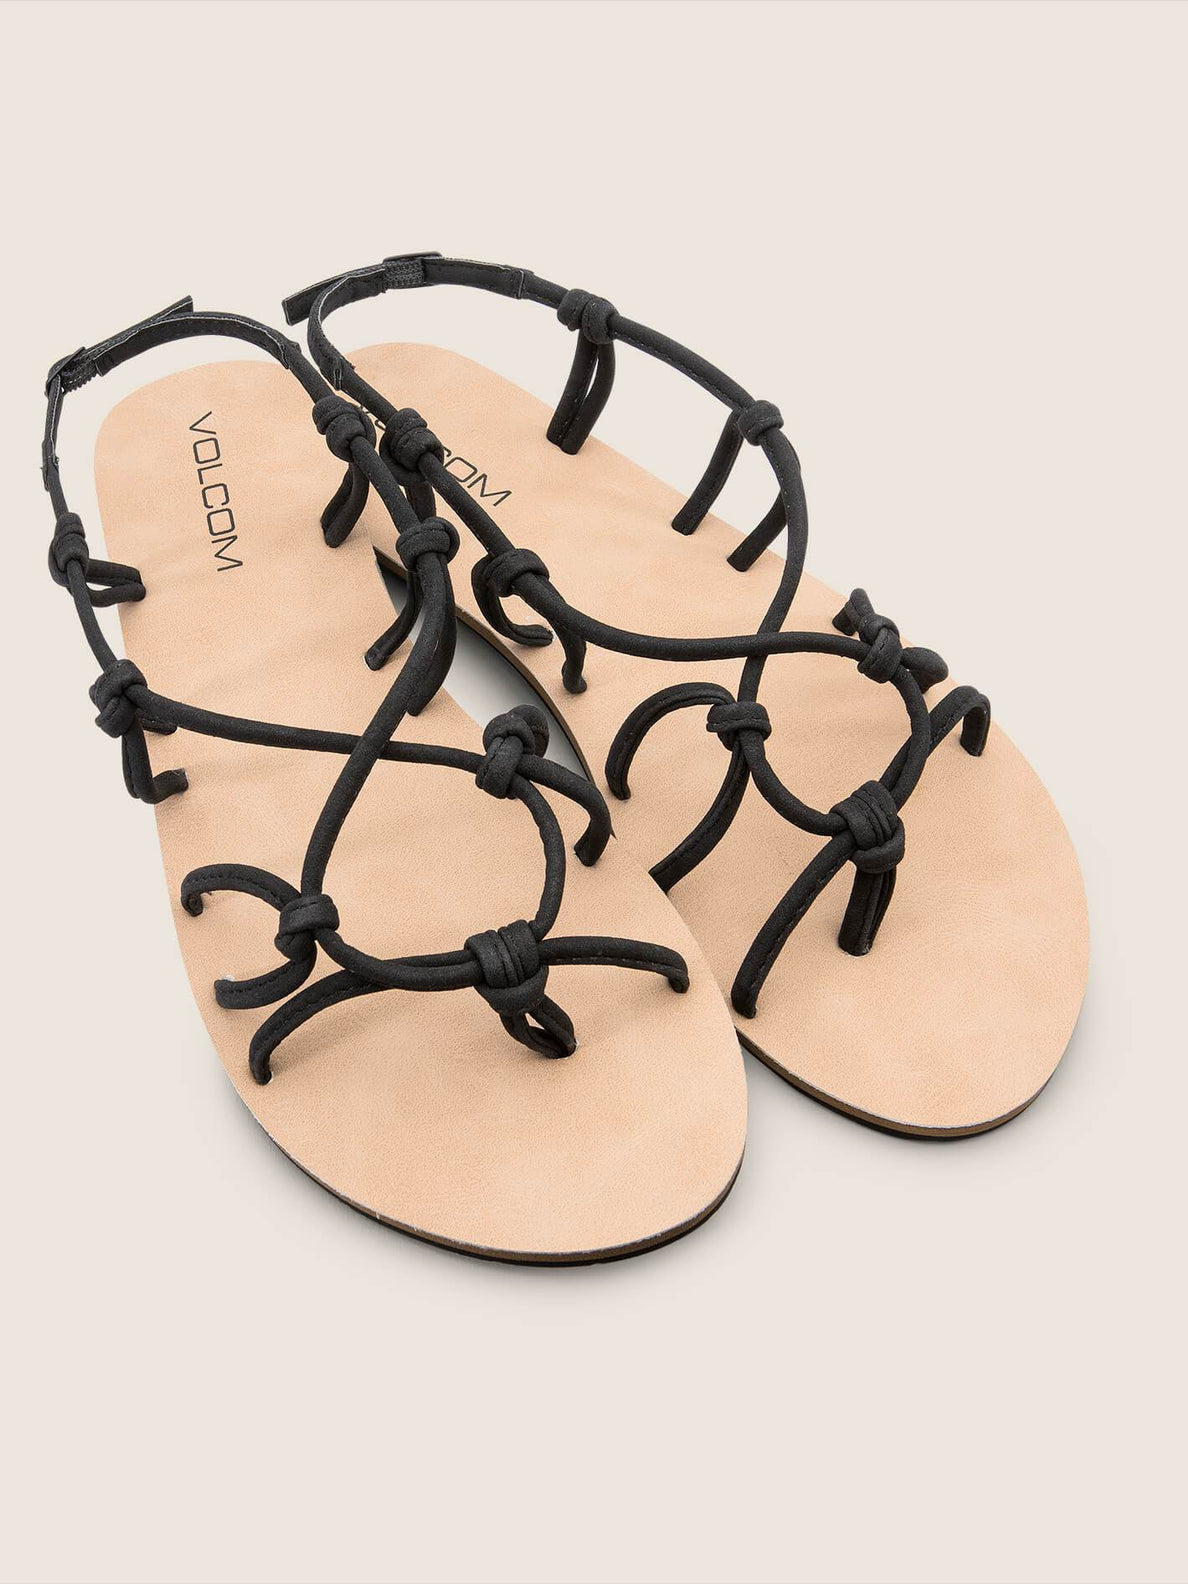 Whateversclever Sandals In Black, Front View